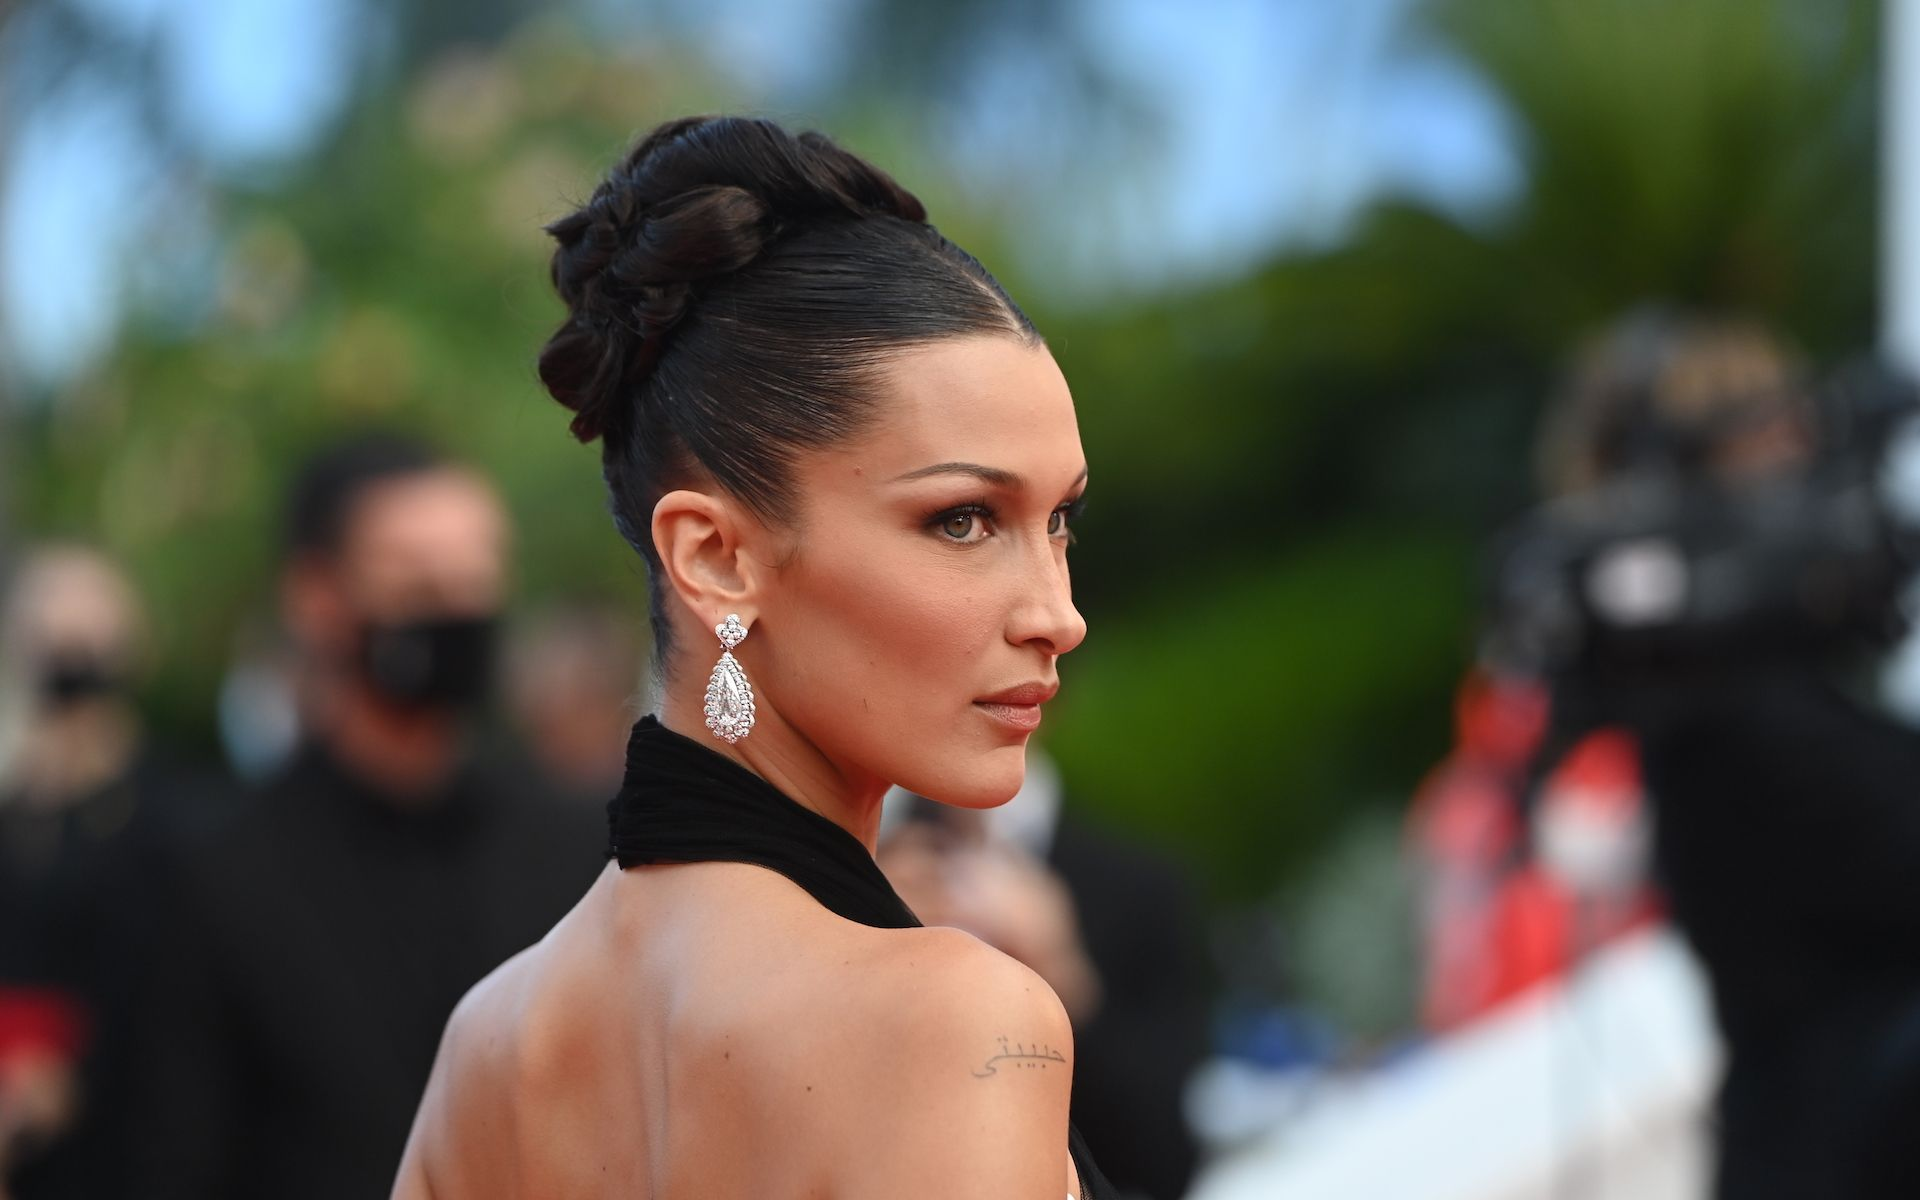 """CANNES, FRANCE - JULY 06: Bella Hadid attends the """"Annette"""" screening and opening ceremony during the 74th annual Cannes Film Festival on July 06, 2021 in Cannes, France. (Photo by Kate Green/Getty Images)"""